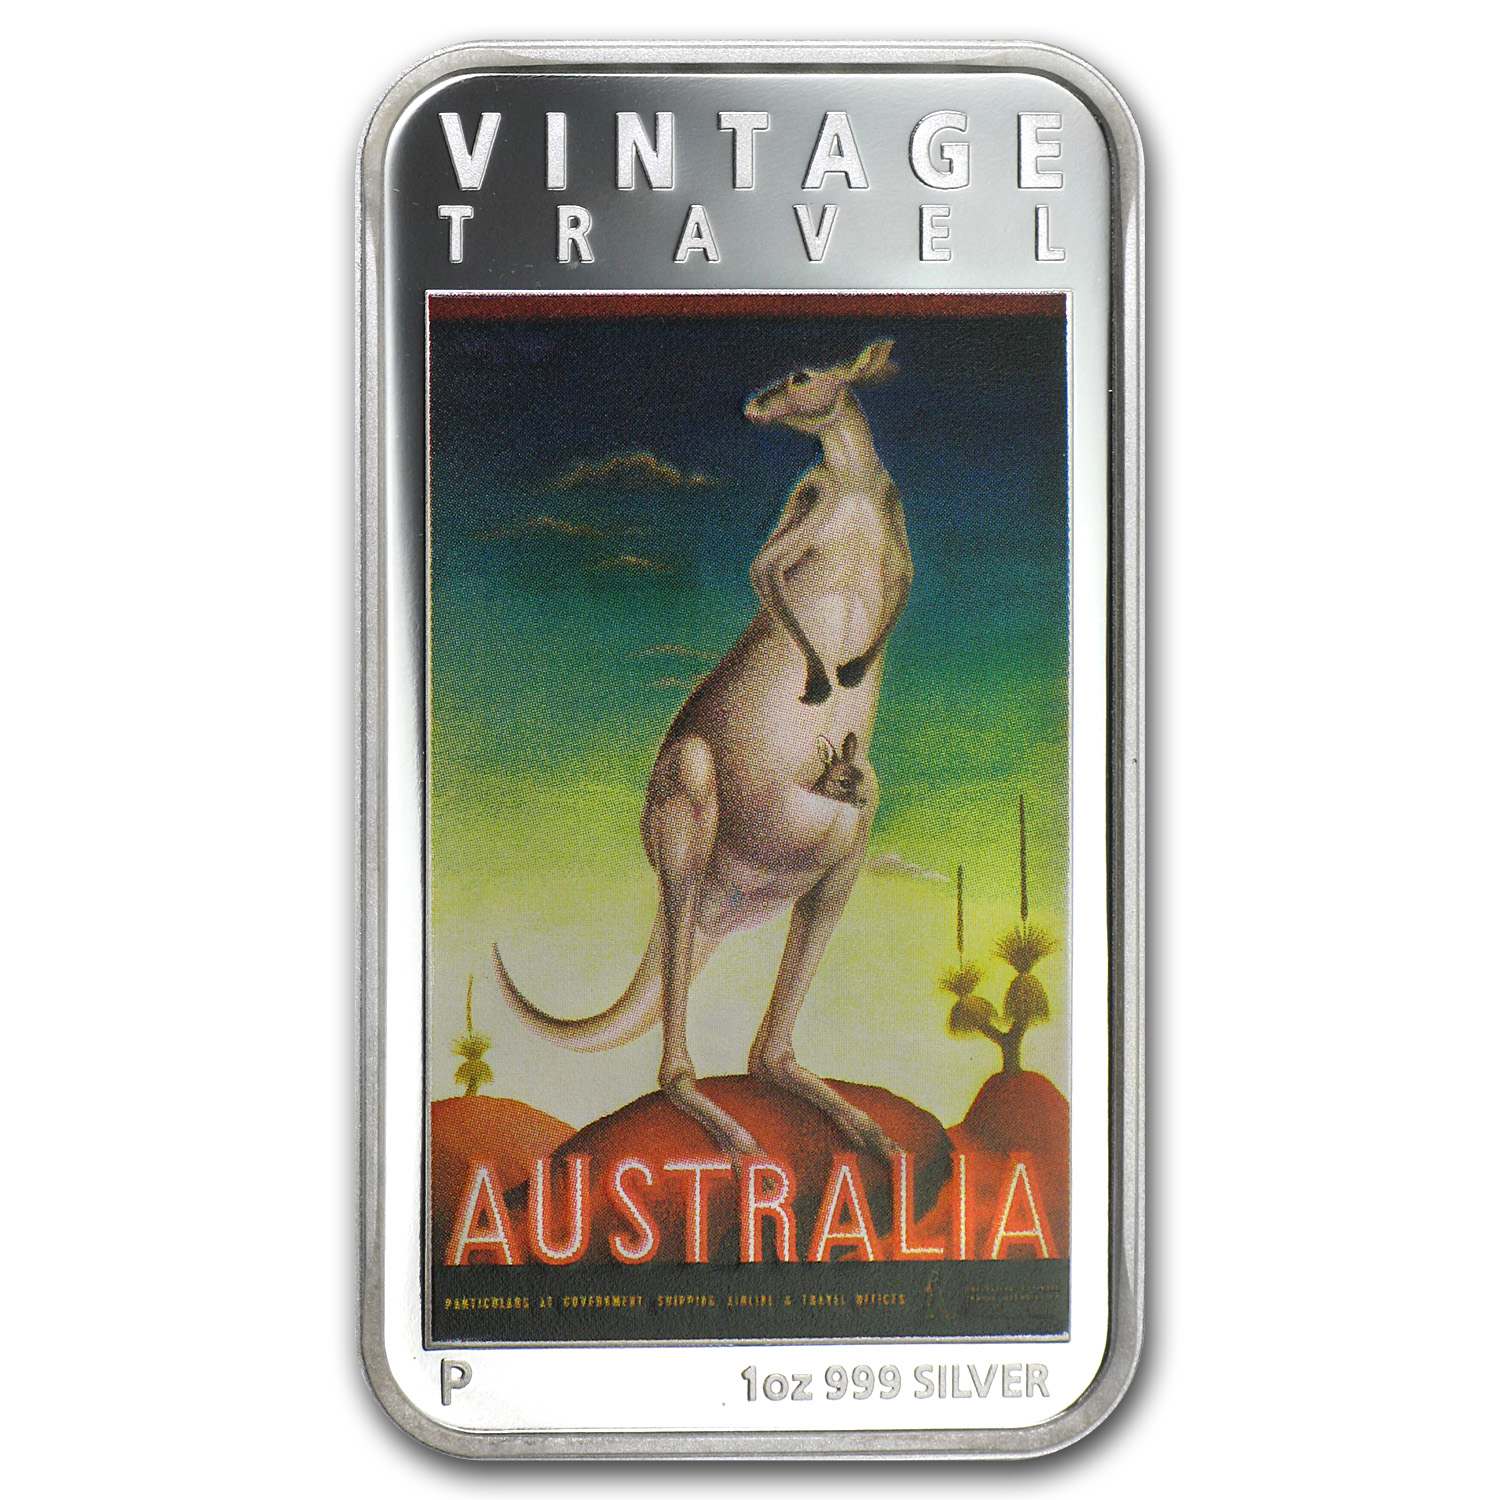 2014 1 oz Silver Proof Australia Vintage Travel Poster - Kangaroo